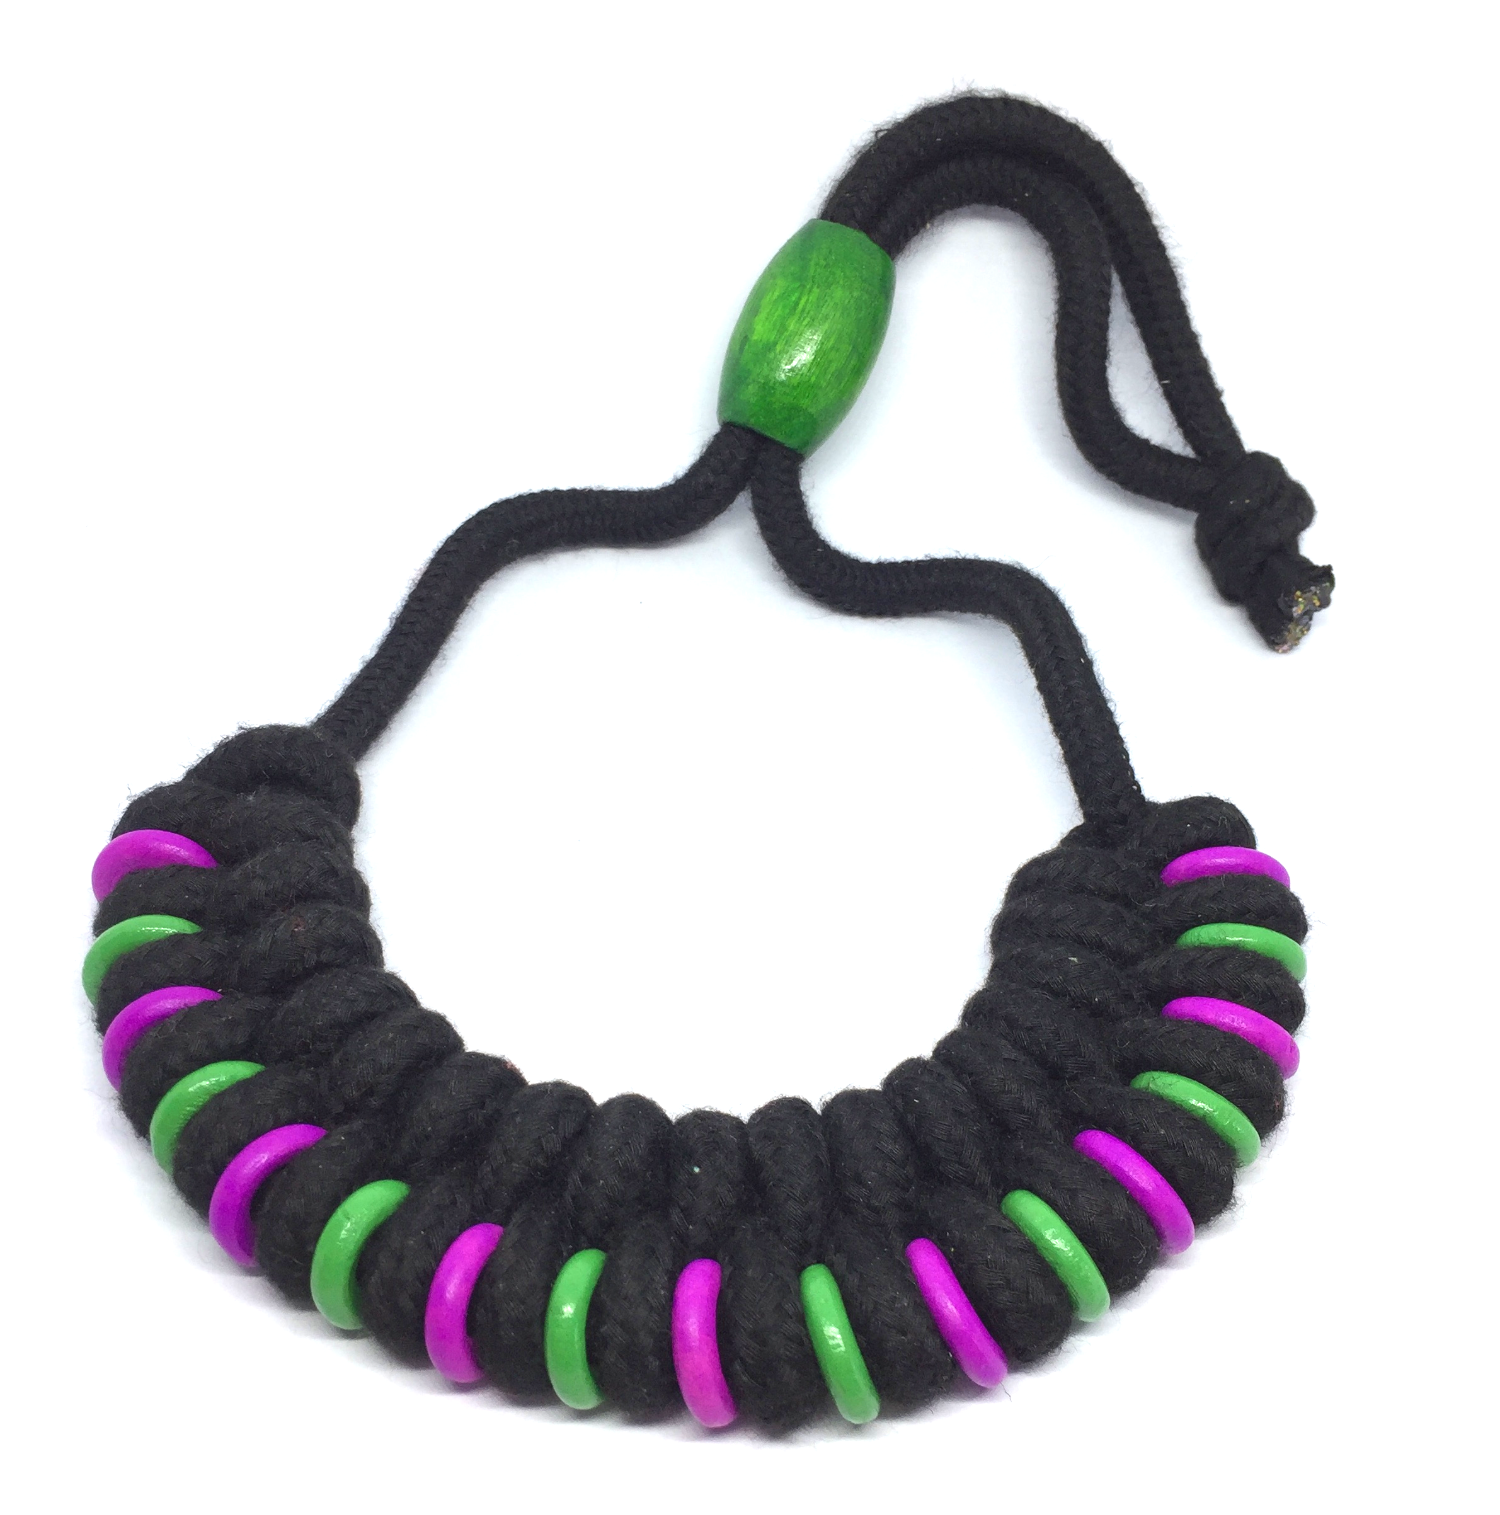 Black braided necklace with purple & green beads